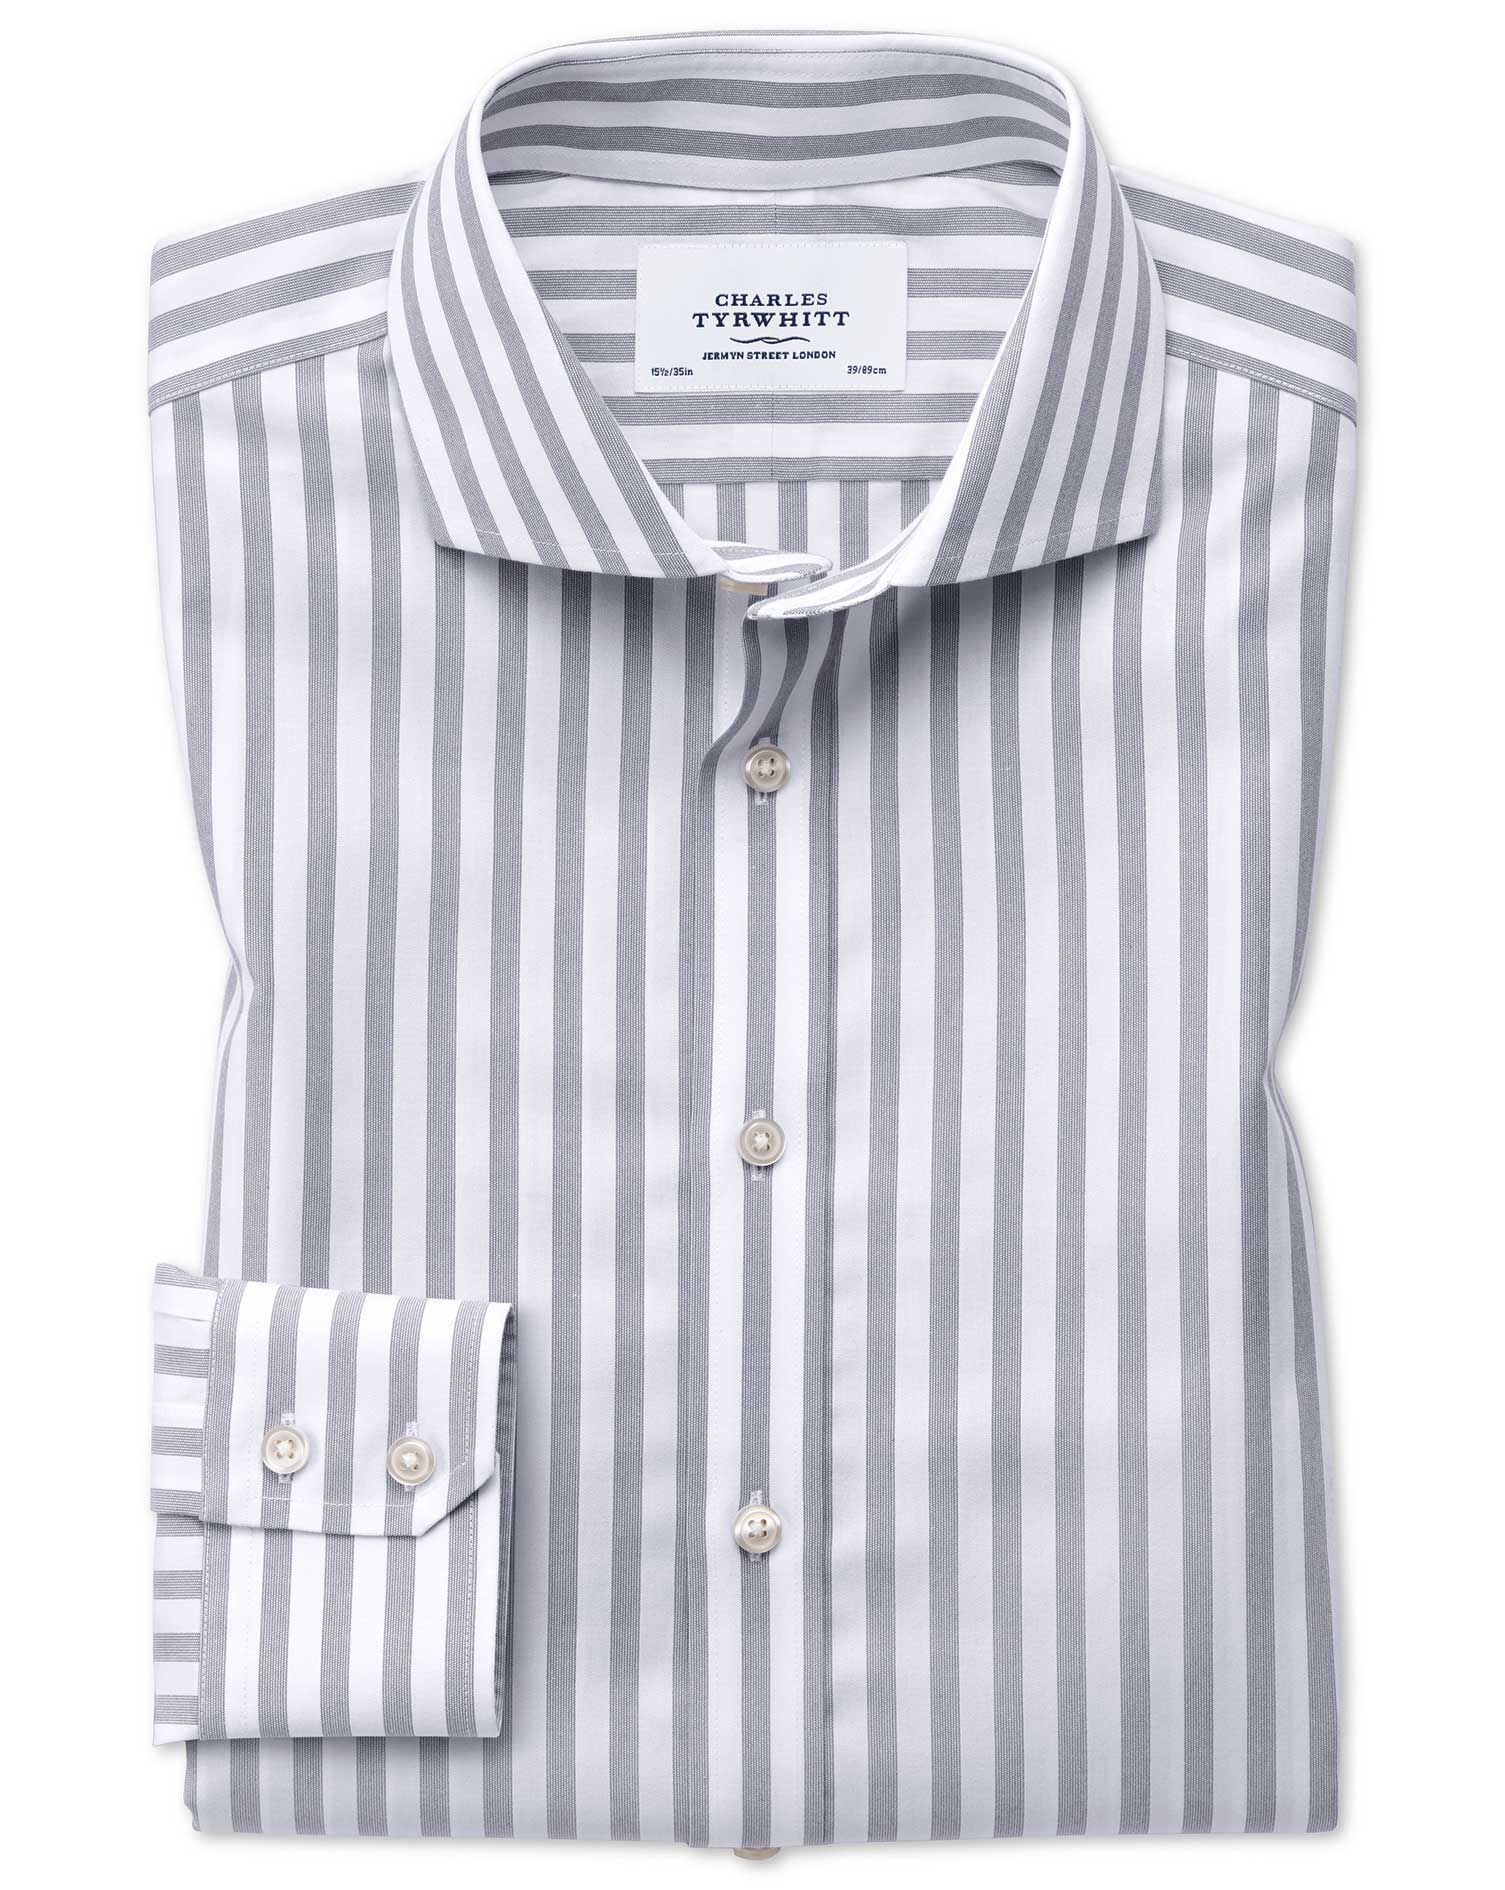 Extra Slim Fit Cutaway Non-Iron Wide Stripe Grey Cotton Formal Shirt Single Cuff Size 15.5/35 by Cha